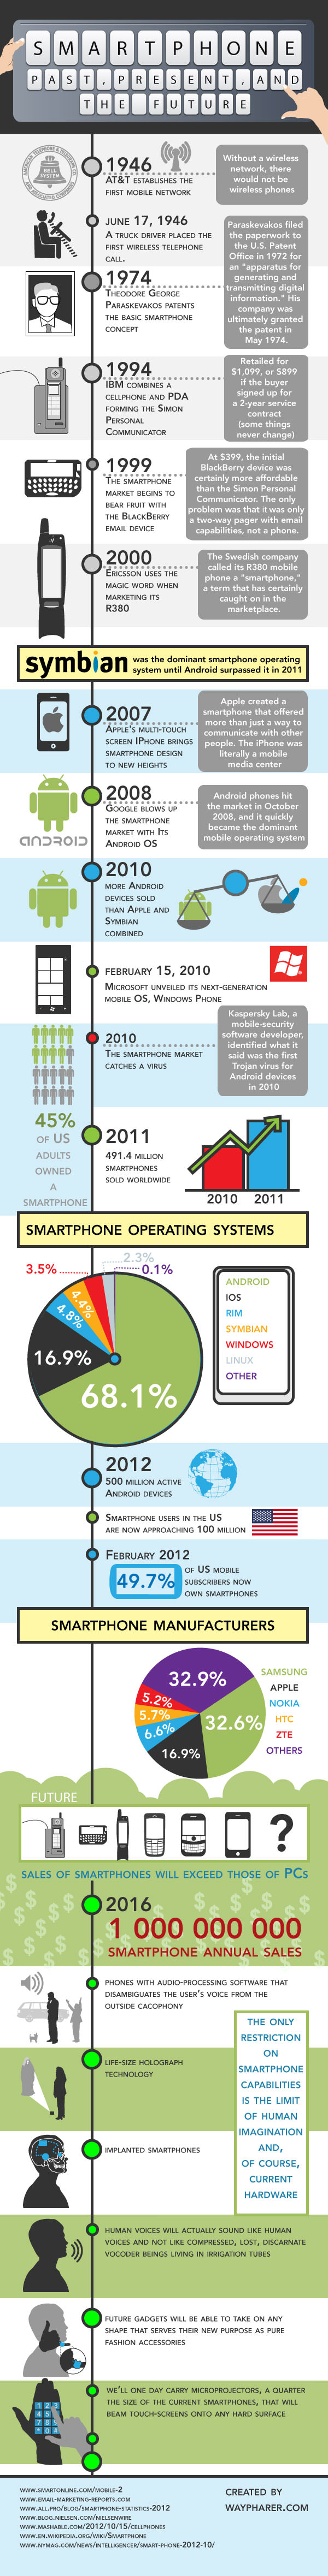 Past, Present And Future Of Smartphones Infographic